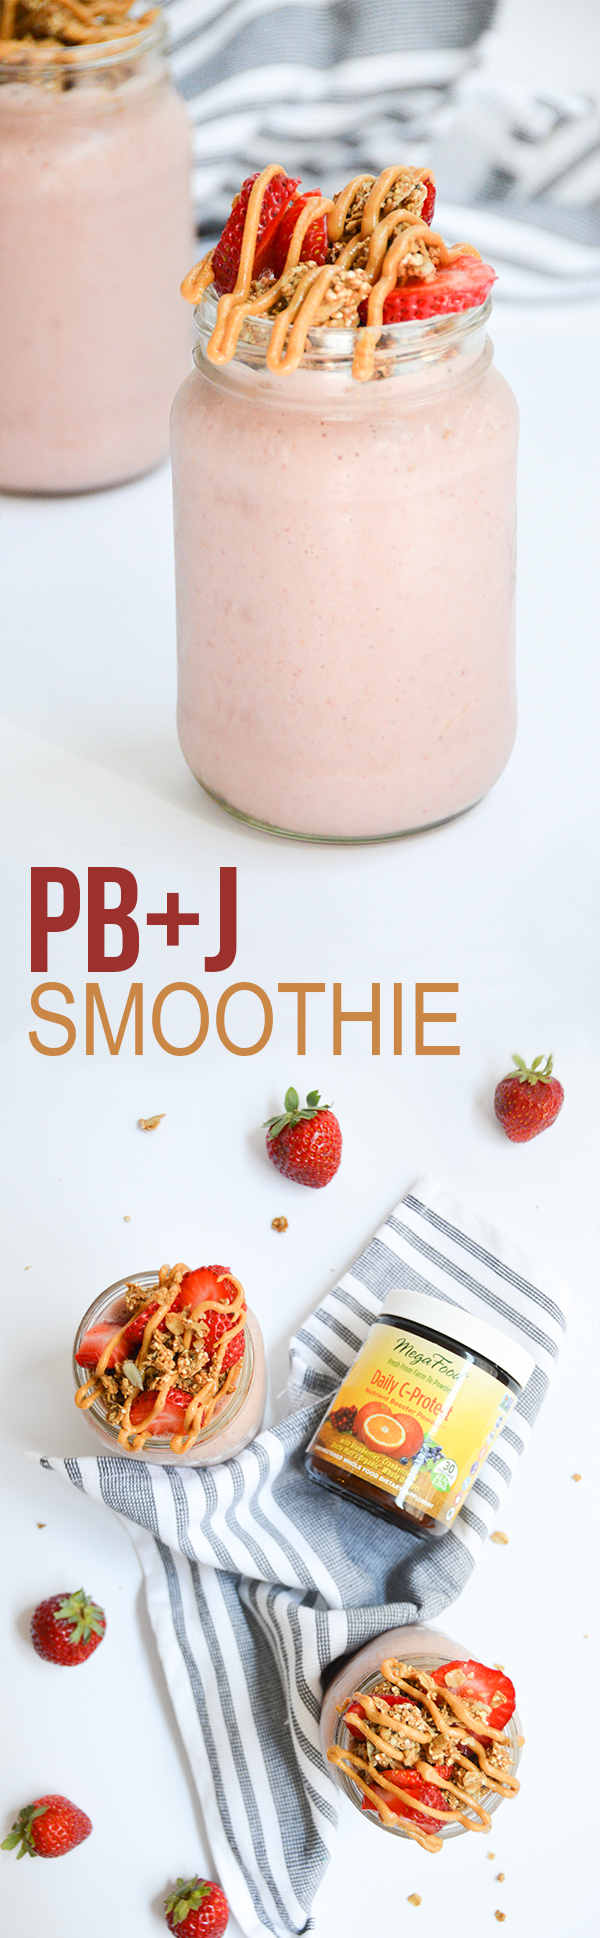 PB&J smoothies for two! Keep it simple or try topping with granola and a peanut butter drizzle (yes, please!)